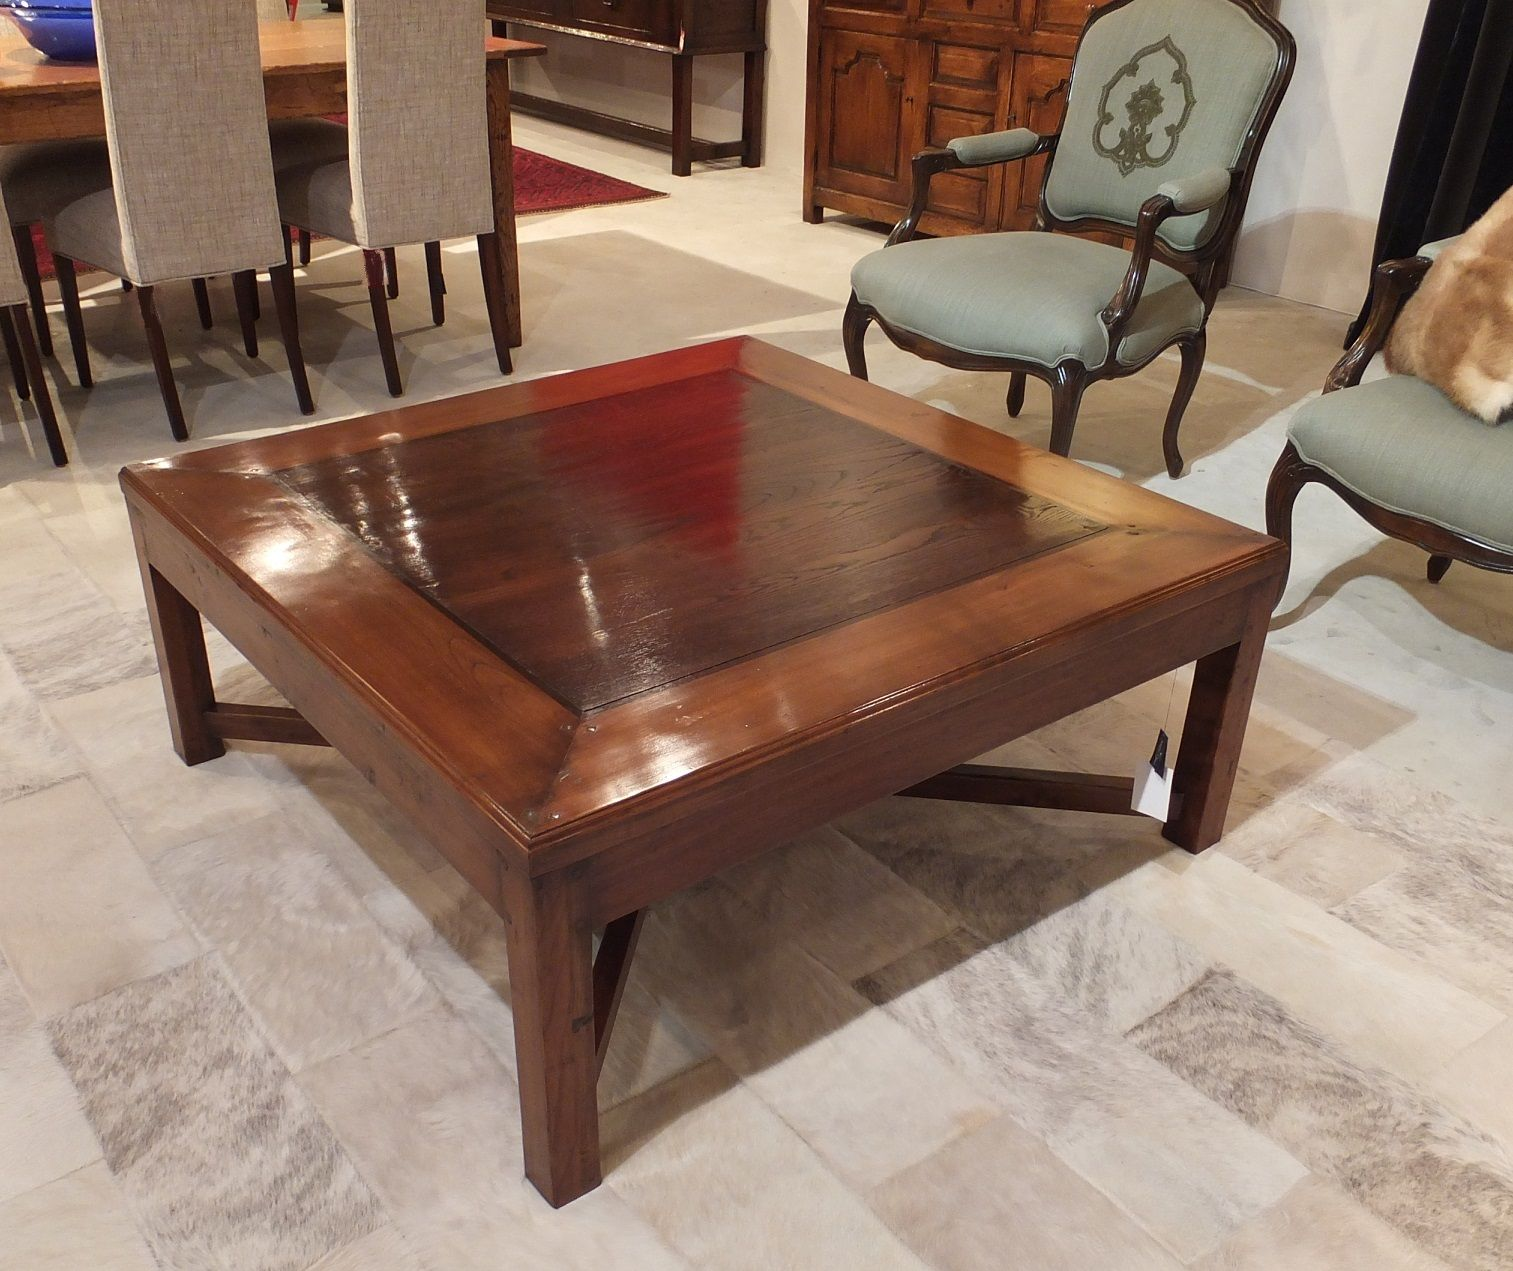 Beaumont Coffee Table French oak and Cherry French Polish